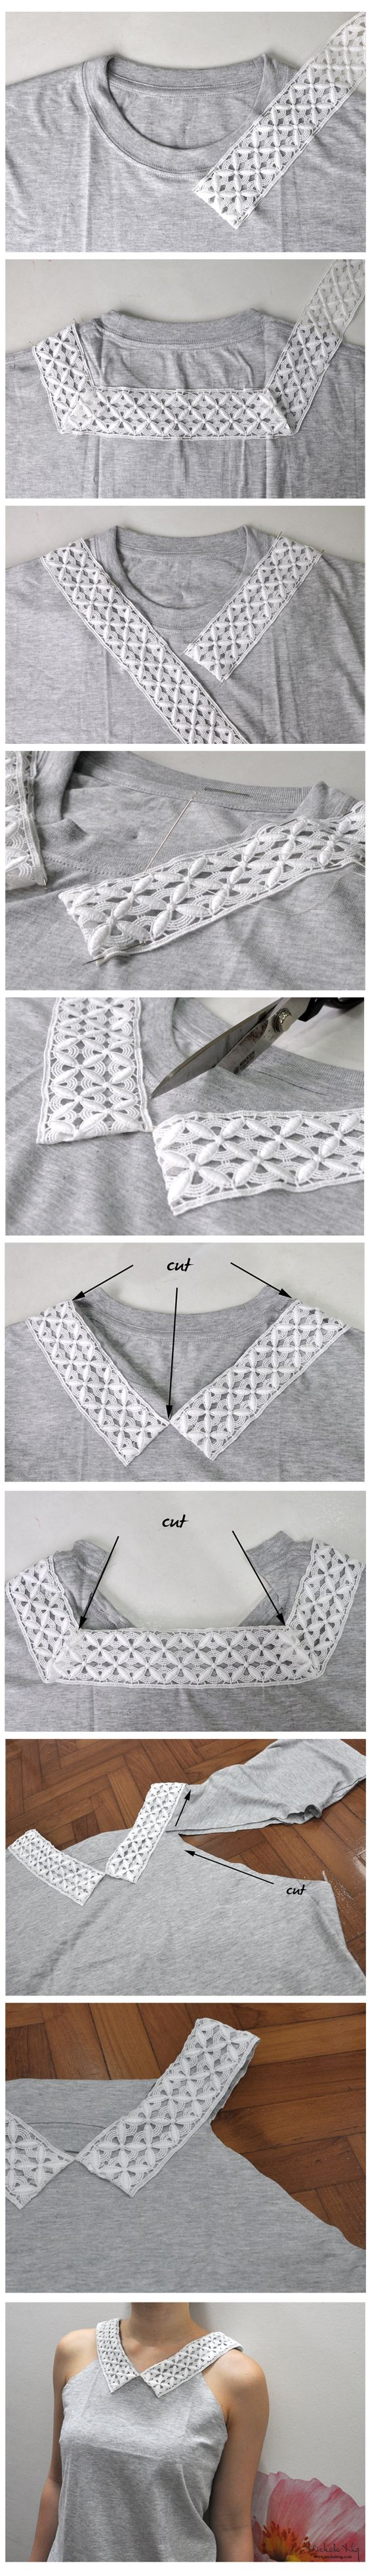 how to upcycle a plain old tee shirt tutorial - so cute